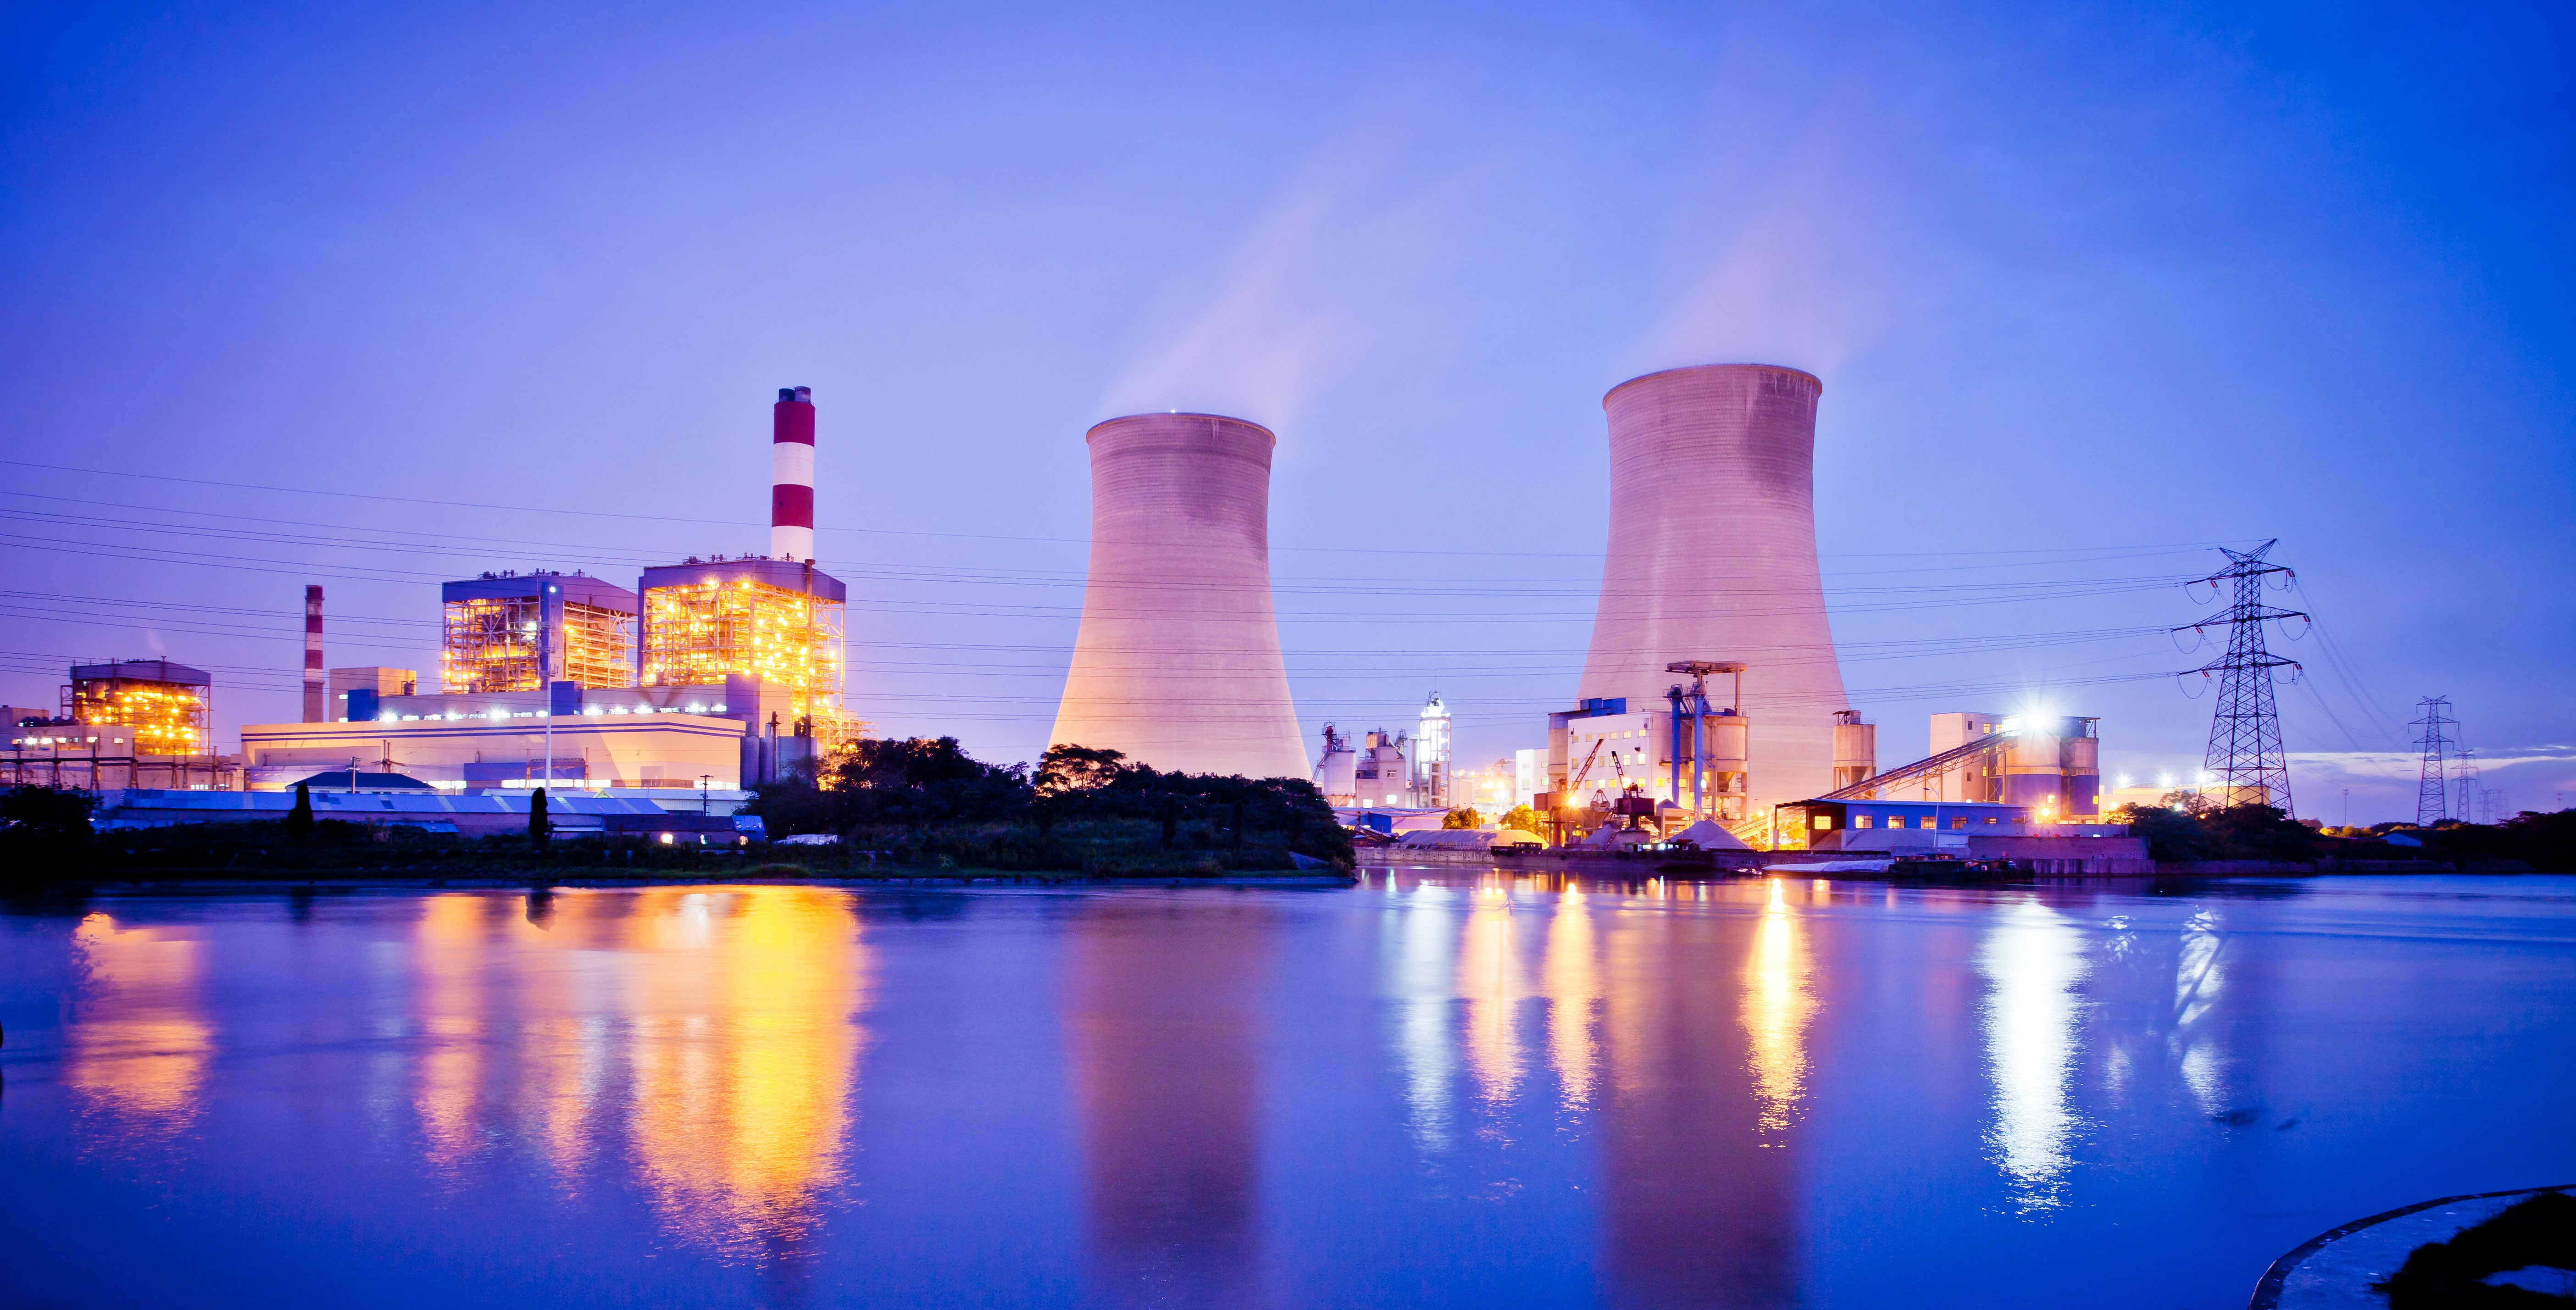 What are the origins of nuclear energy?